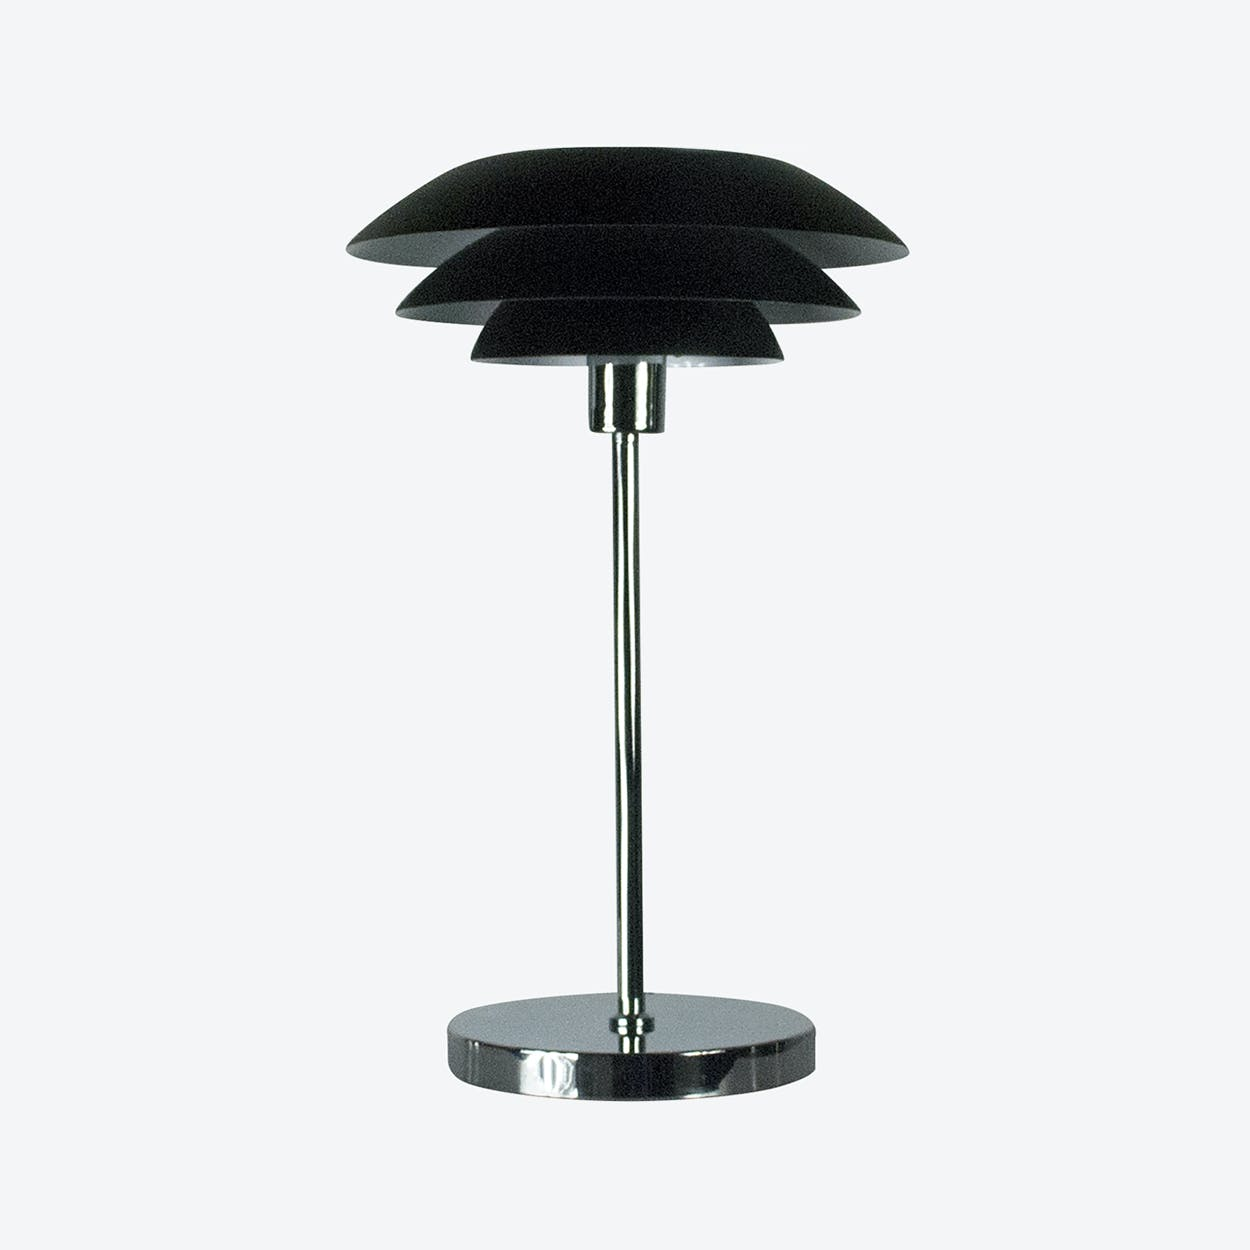 DL31 Table Lamp in Matte Black